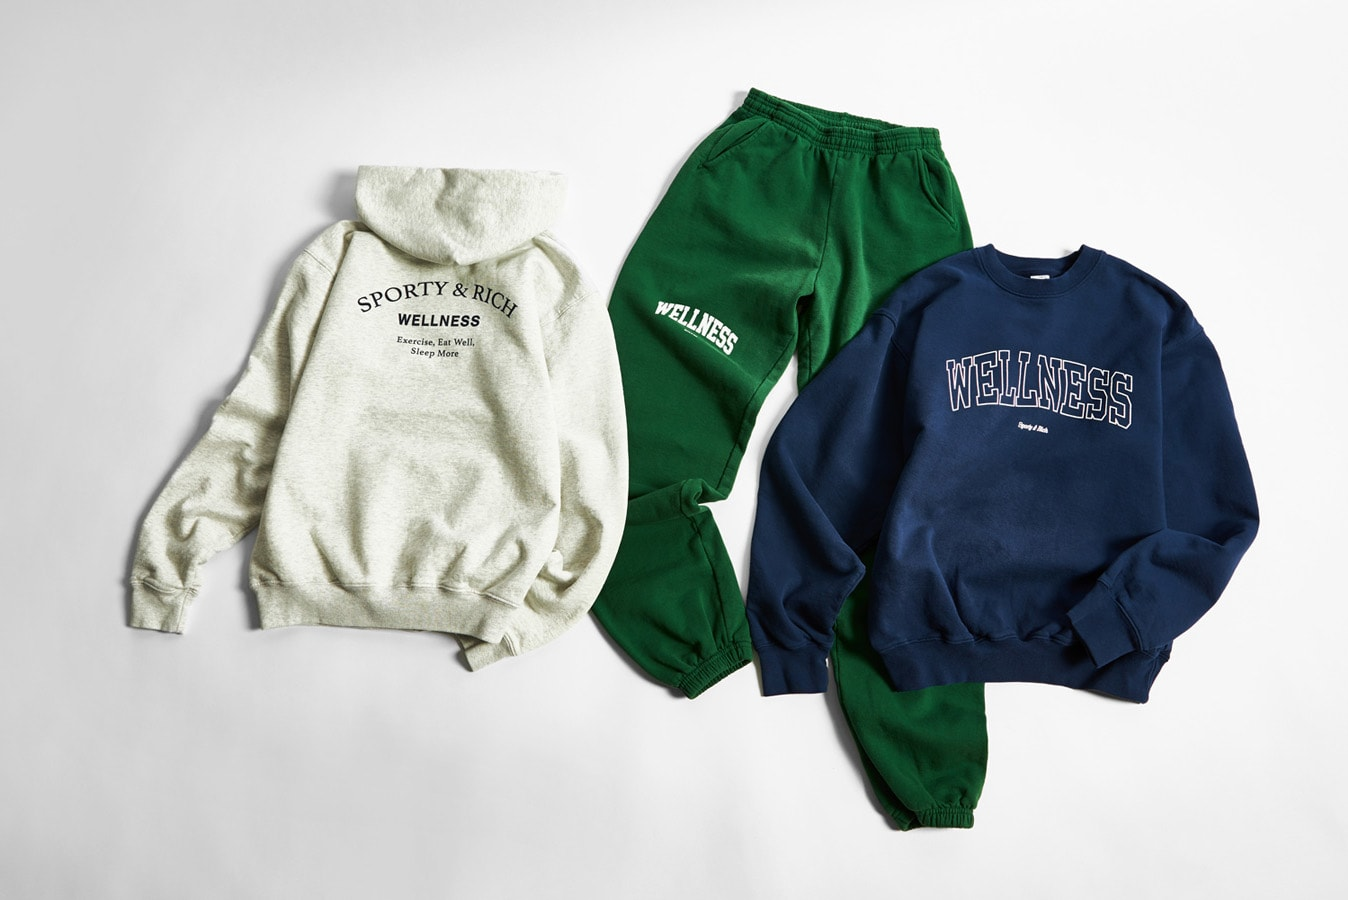 Sporty & Rich END. Exclusive